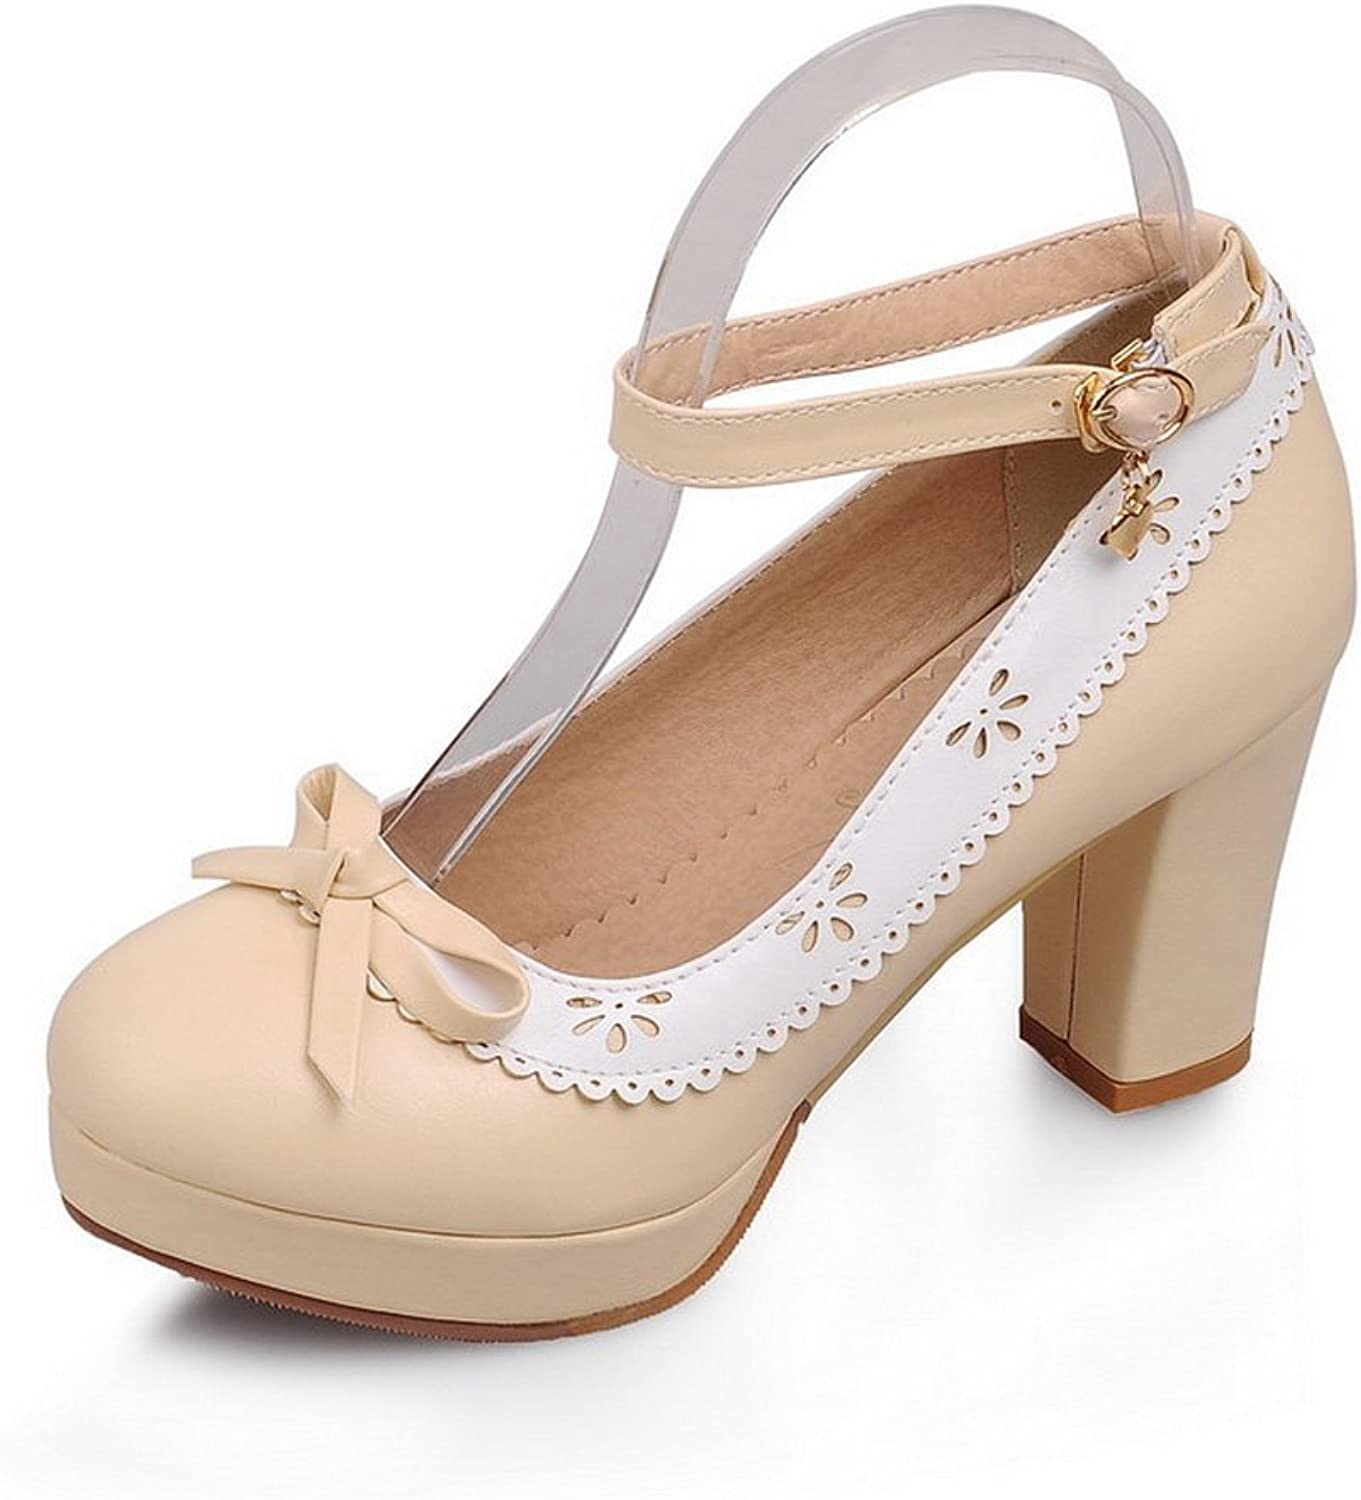 1TO9 Ladies Buckle Low-Cut Uppers Round-Toe Dress Beige Rubber Pumps-shoes - 7.5 B(M) US